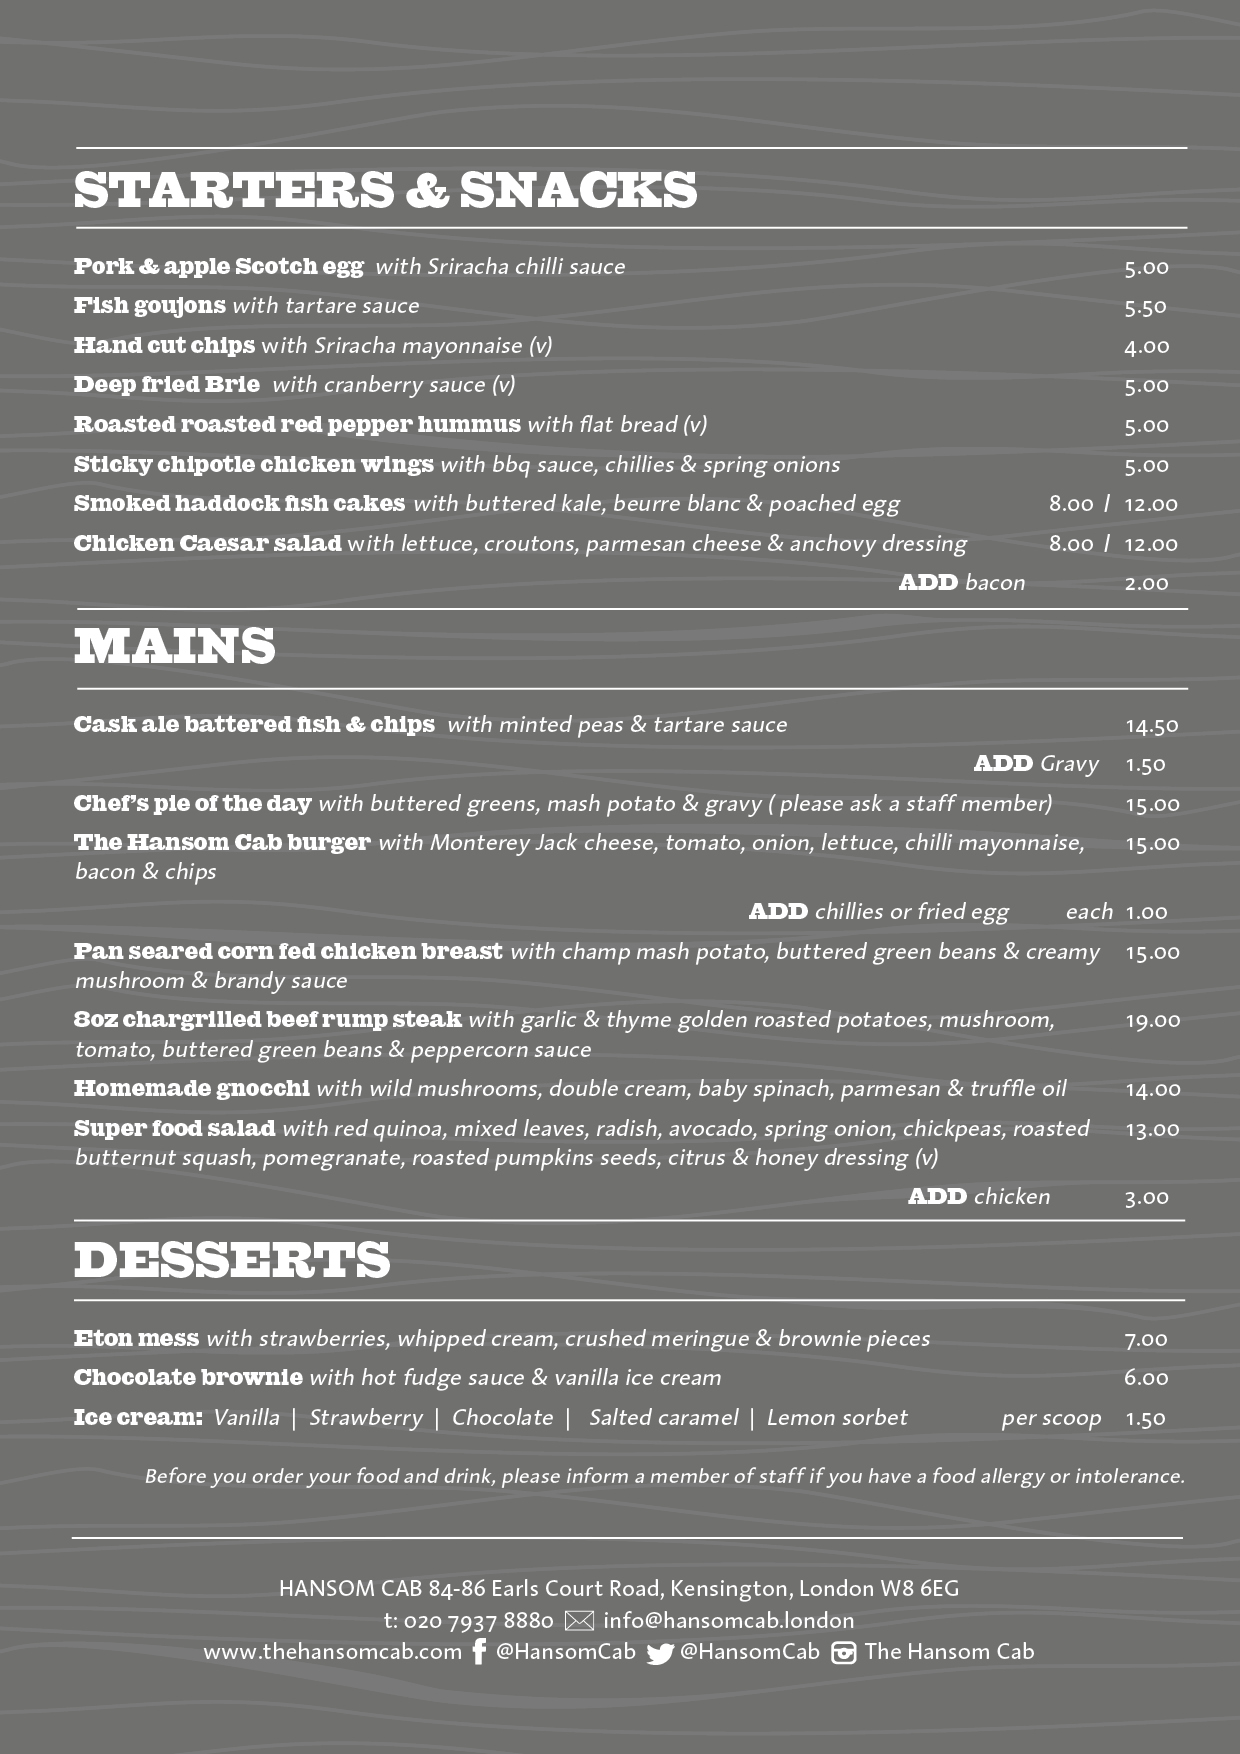 Hansom Cab Kensington A4 FOOD MENU